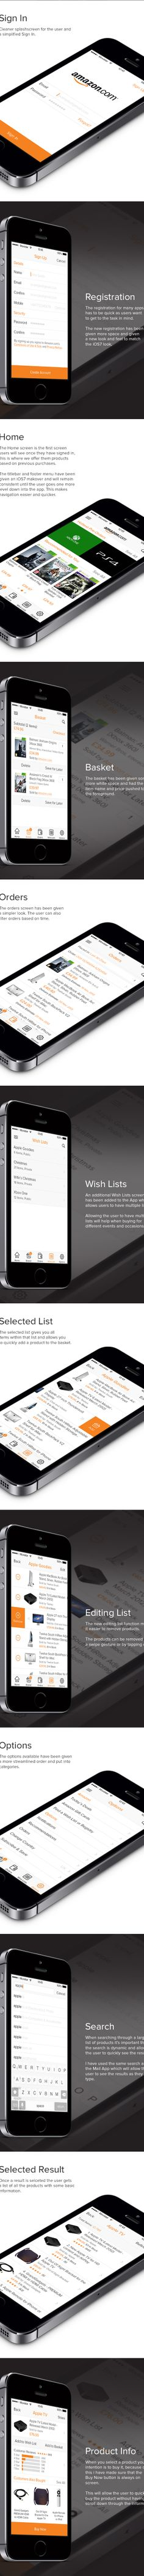 Amazon - iOS7 Redesign by Michael Shanks, via Behance